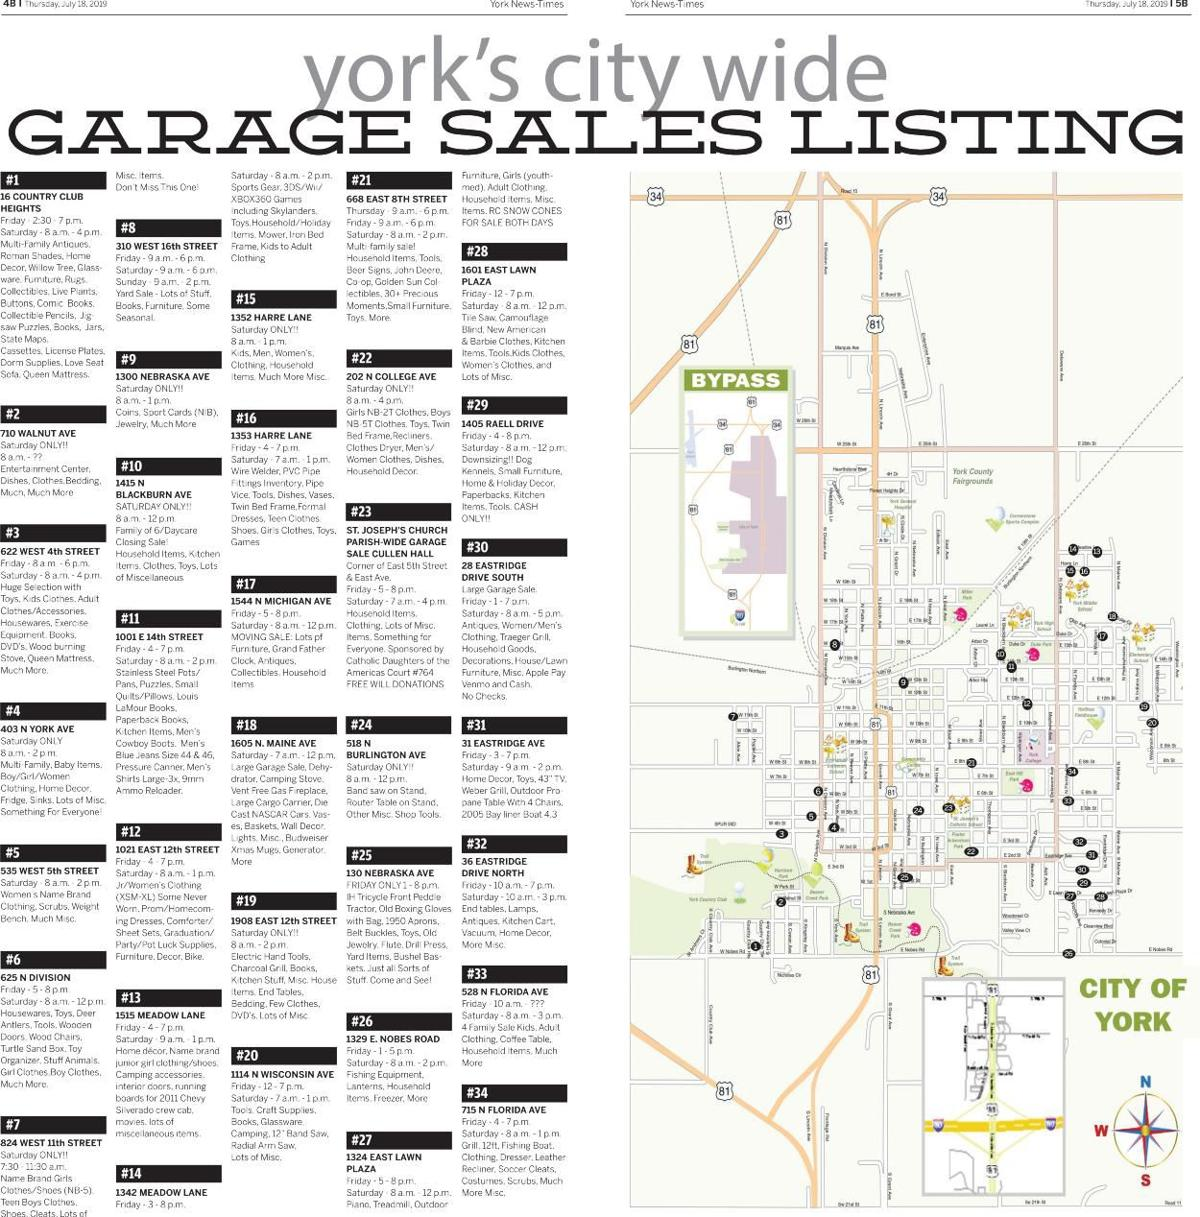 Garage Sale Map | | yorknewstimes.com on click to color us map, plant location map, clickable us map, foreign exchange map, crowdsourcing map, global data map, trade map, personal excellence map, creative strategy map, cash map, rep map, routes to market map, inventory map, journalism map, consumer goods map, ngo map, coordinating map, developing markets map, aerospace map, nemra map,